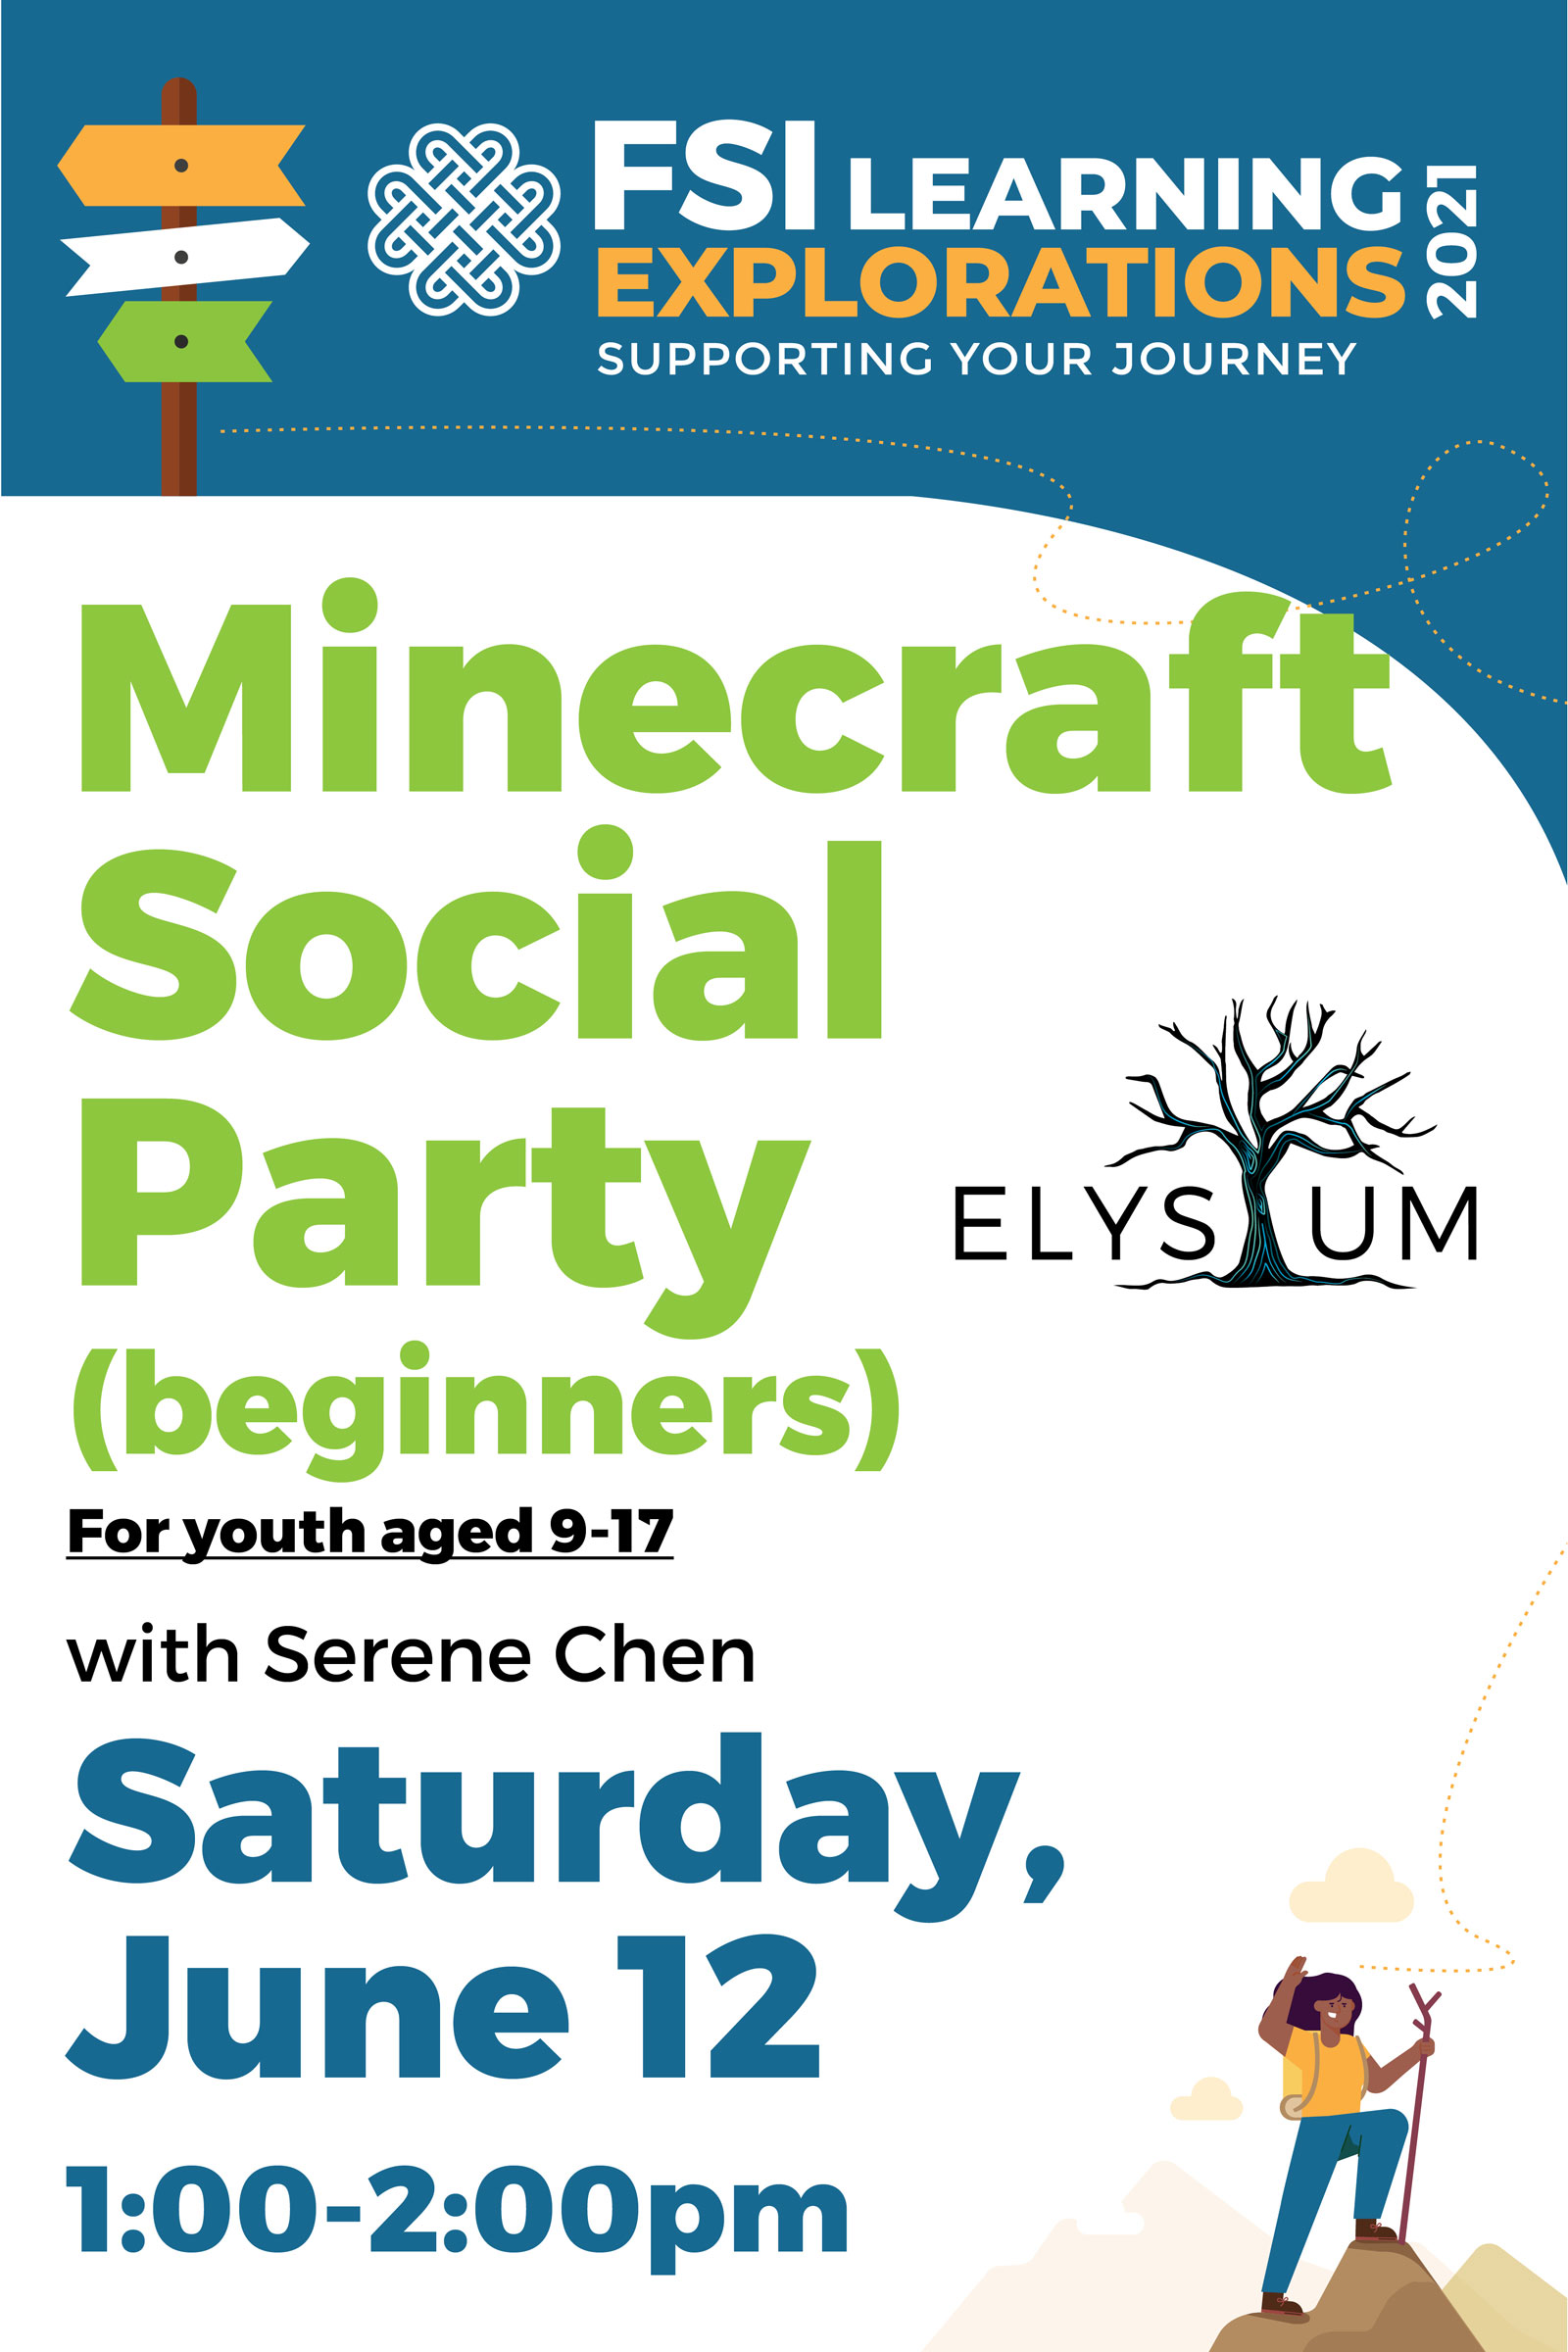 FSI Learning Explorations - Beginners Minecraft Social Party